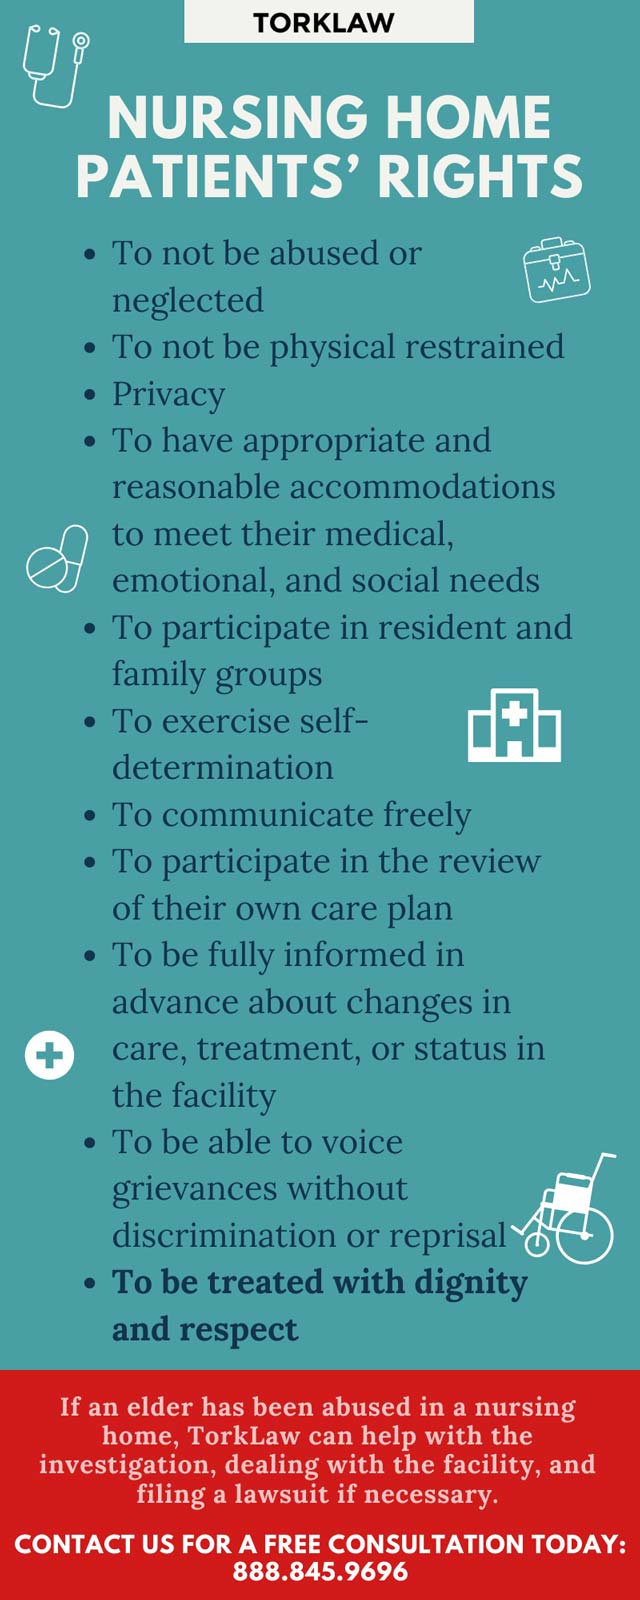 nursing home patients' rights